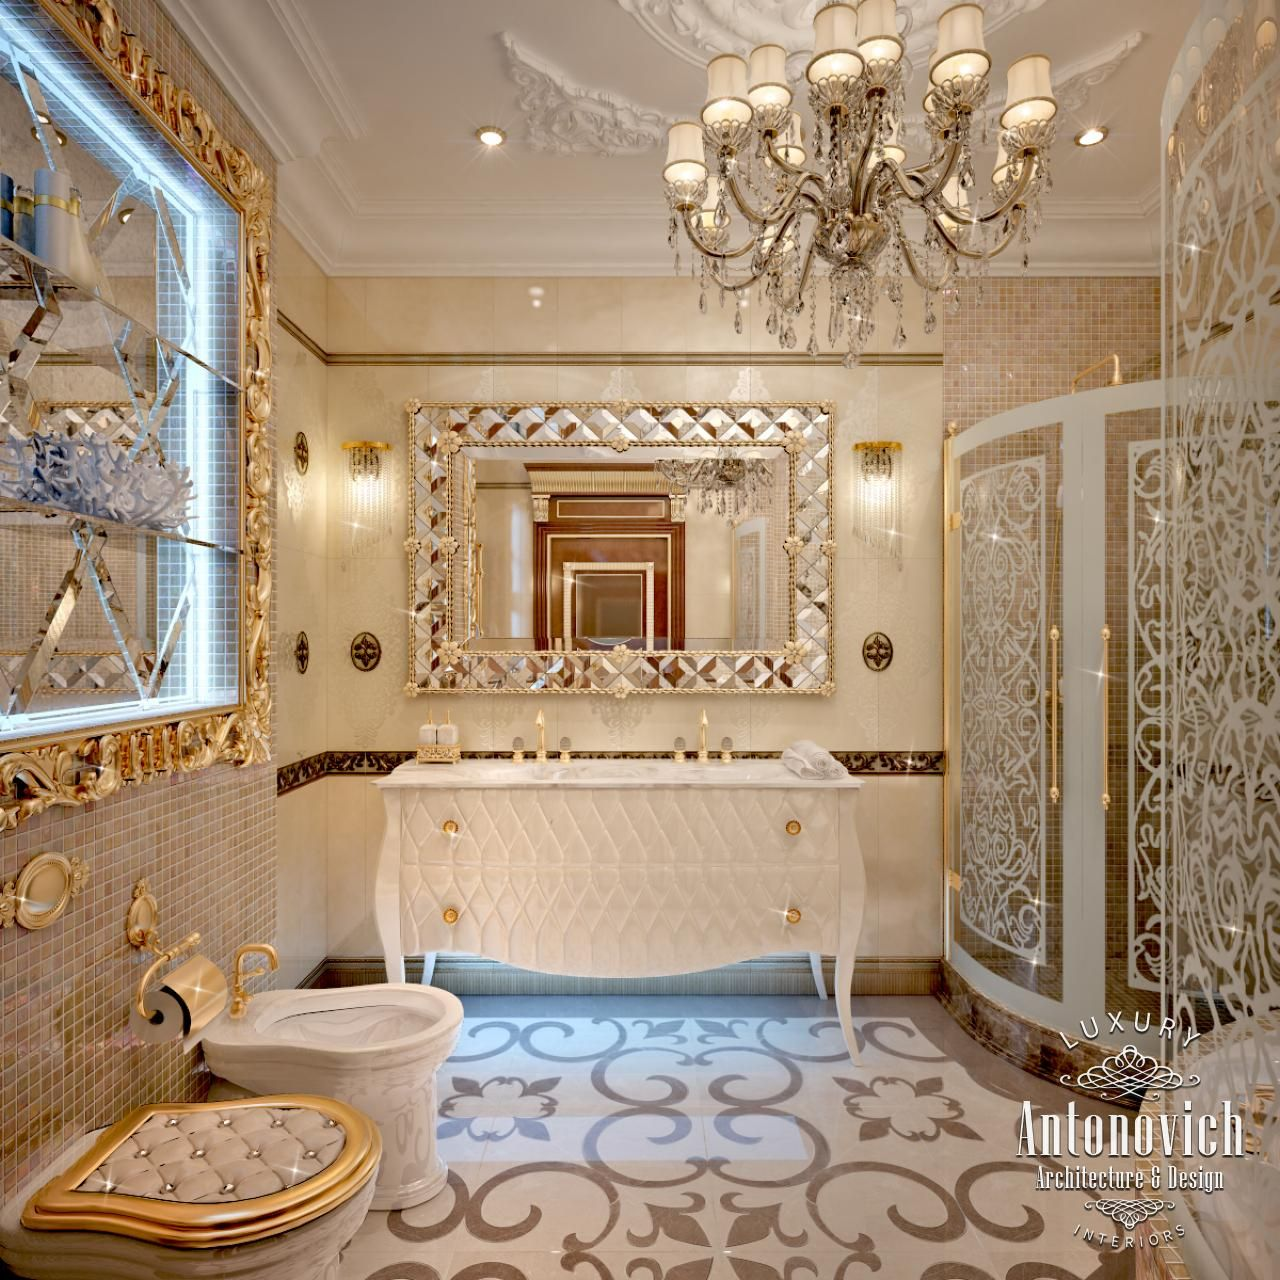 Bathroom design in dubai luxury bathroom interior photo for Luxury bathroom designs